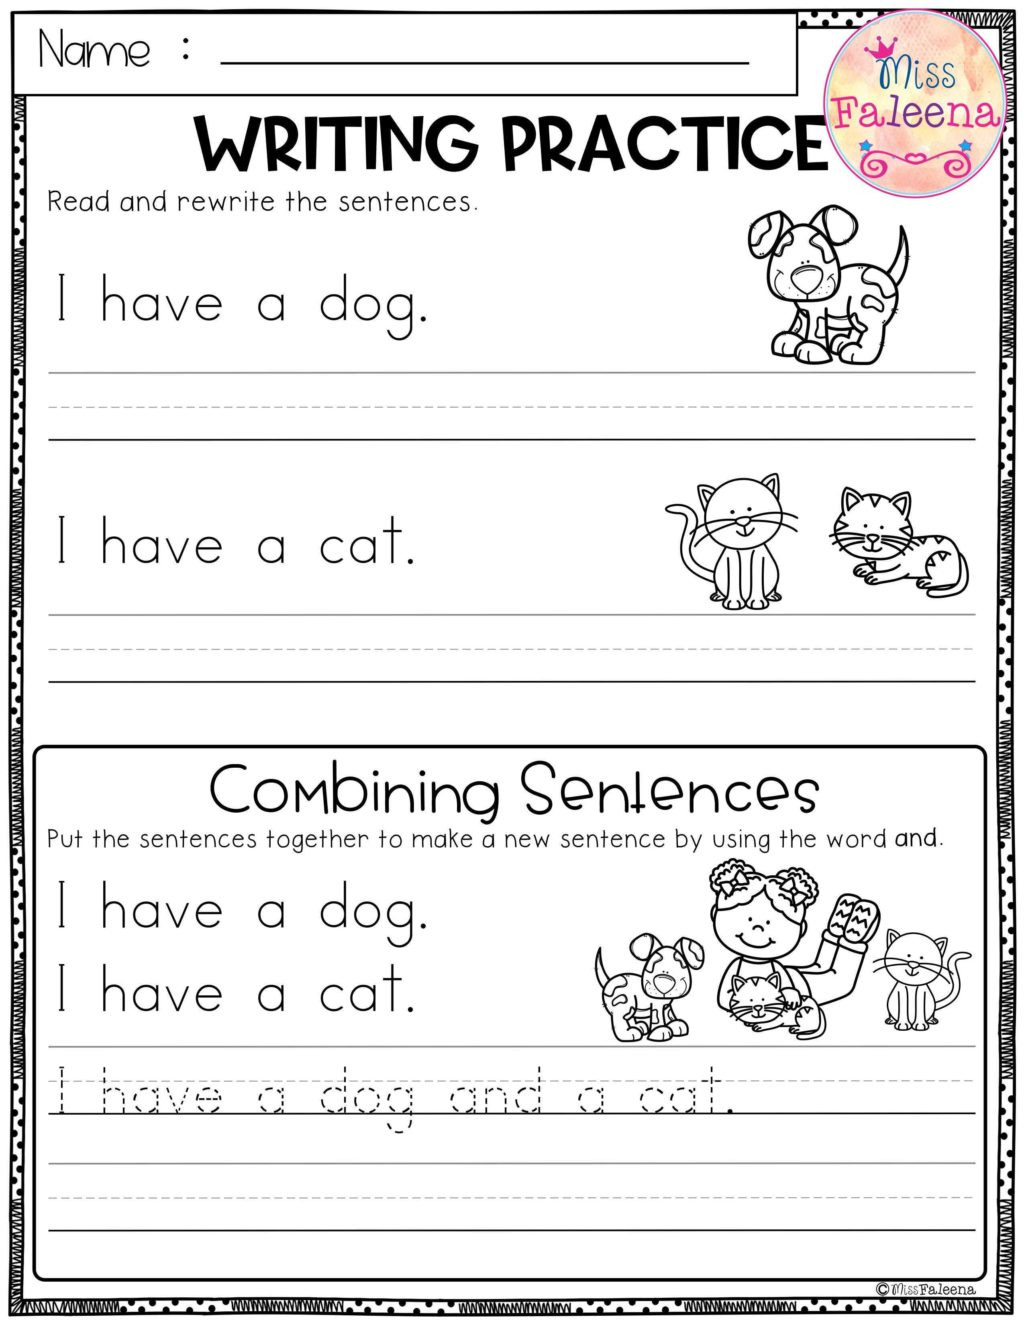 Combining Sentences Worksheets 5th Grade Worksheet Excelent Free Writing Worksheets Practice